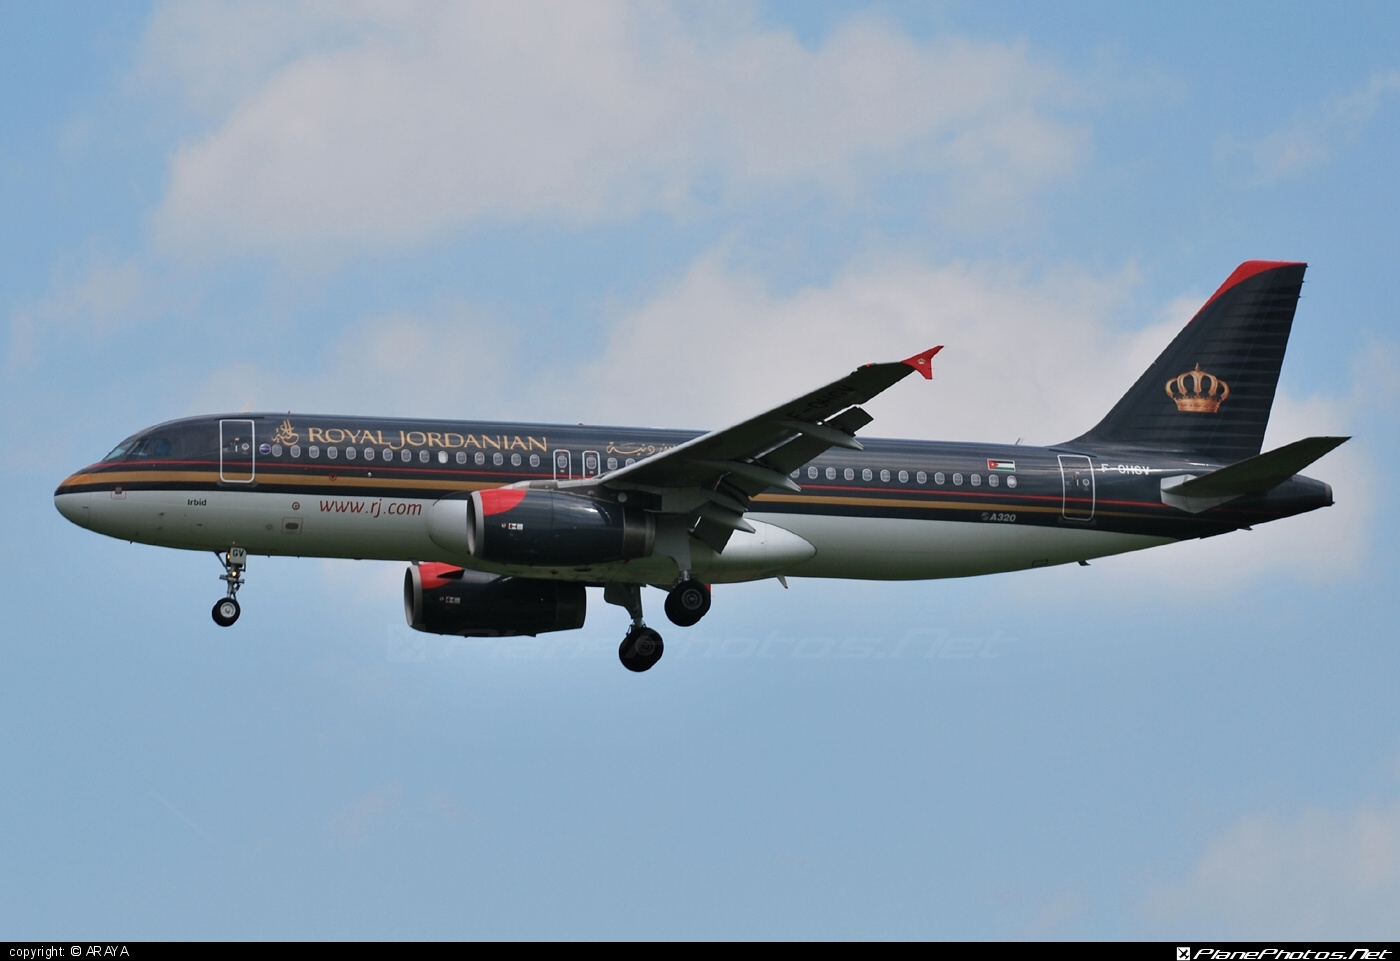 Airbus A320-232 - F-OHGV operated by Royal Jordanian #a320 #a320family #airbus #airbus320